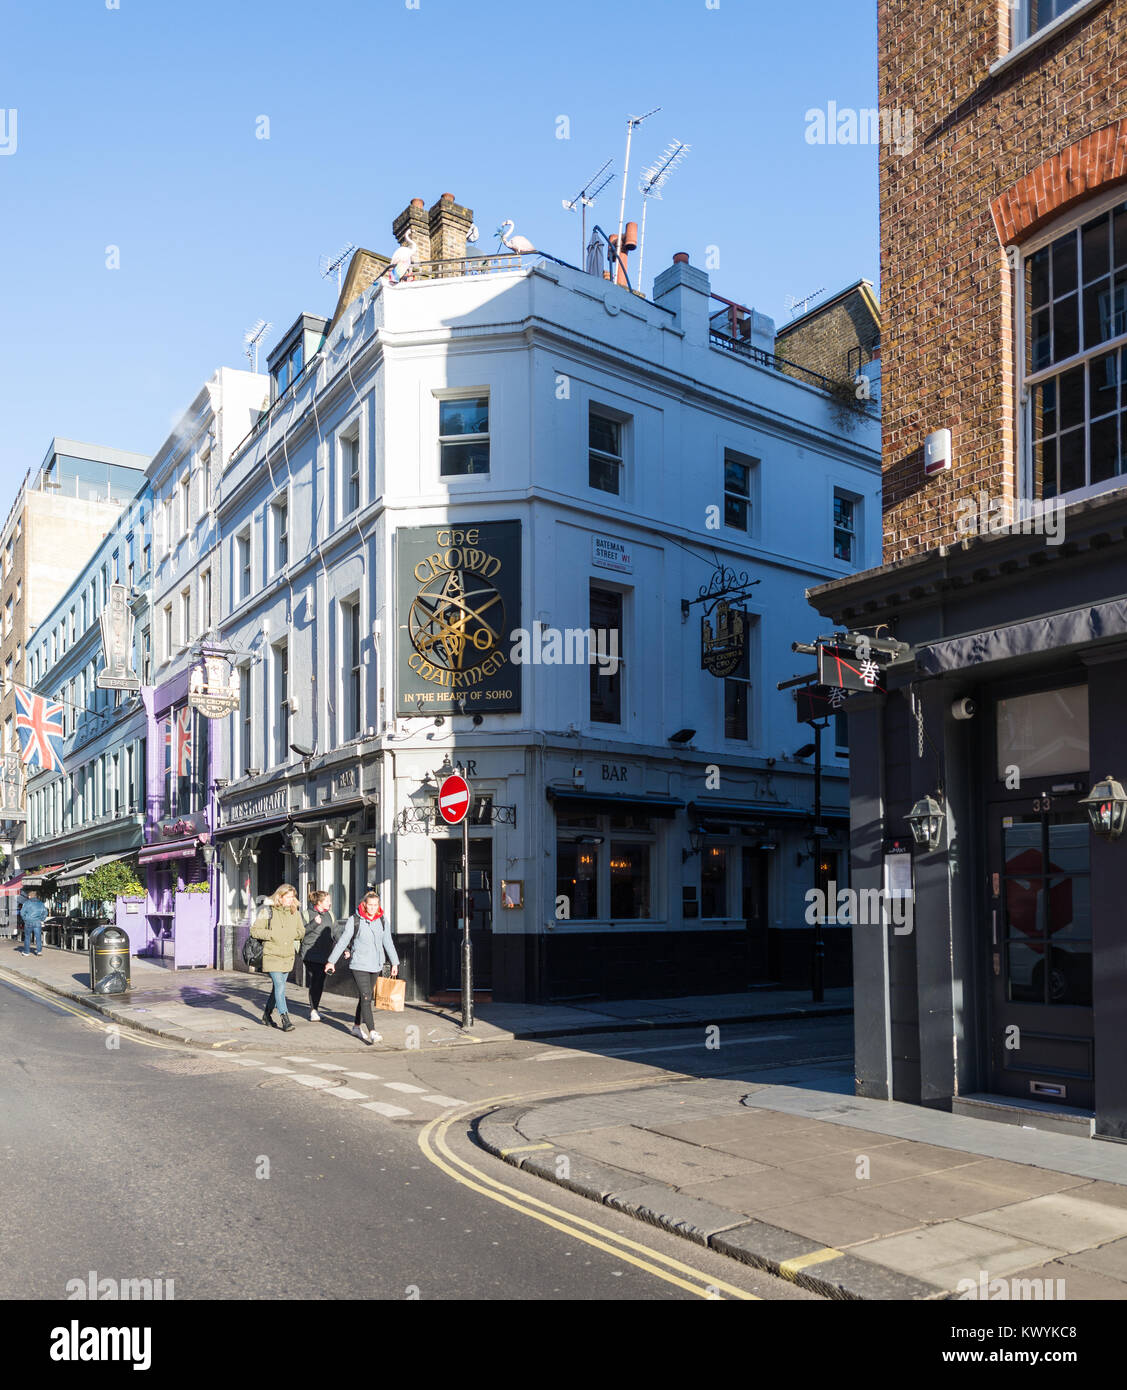 The Crown and Two Chairmen pub on the corner of Dean Street and Bateman Street in Soho, London, England, UK. - Stock Image